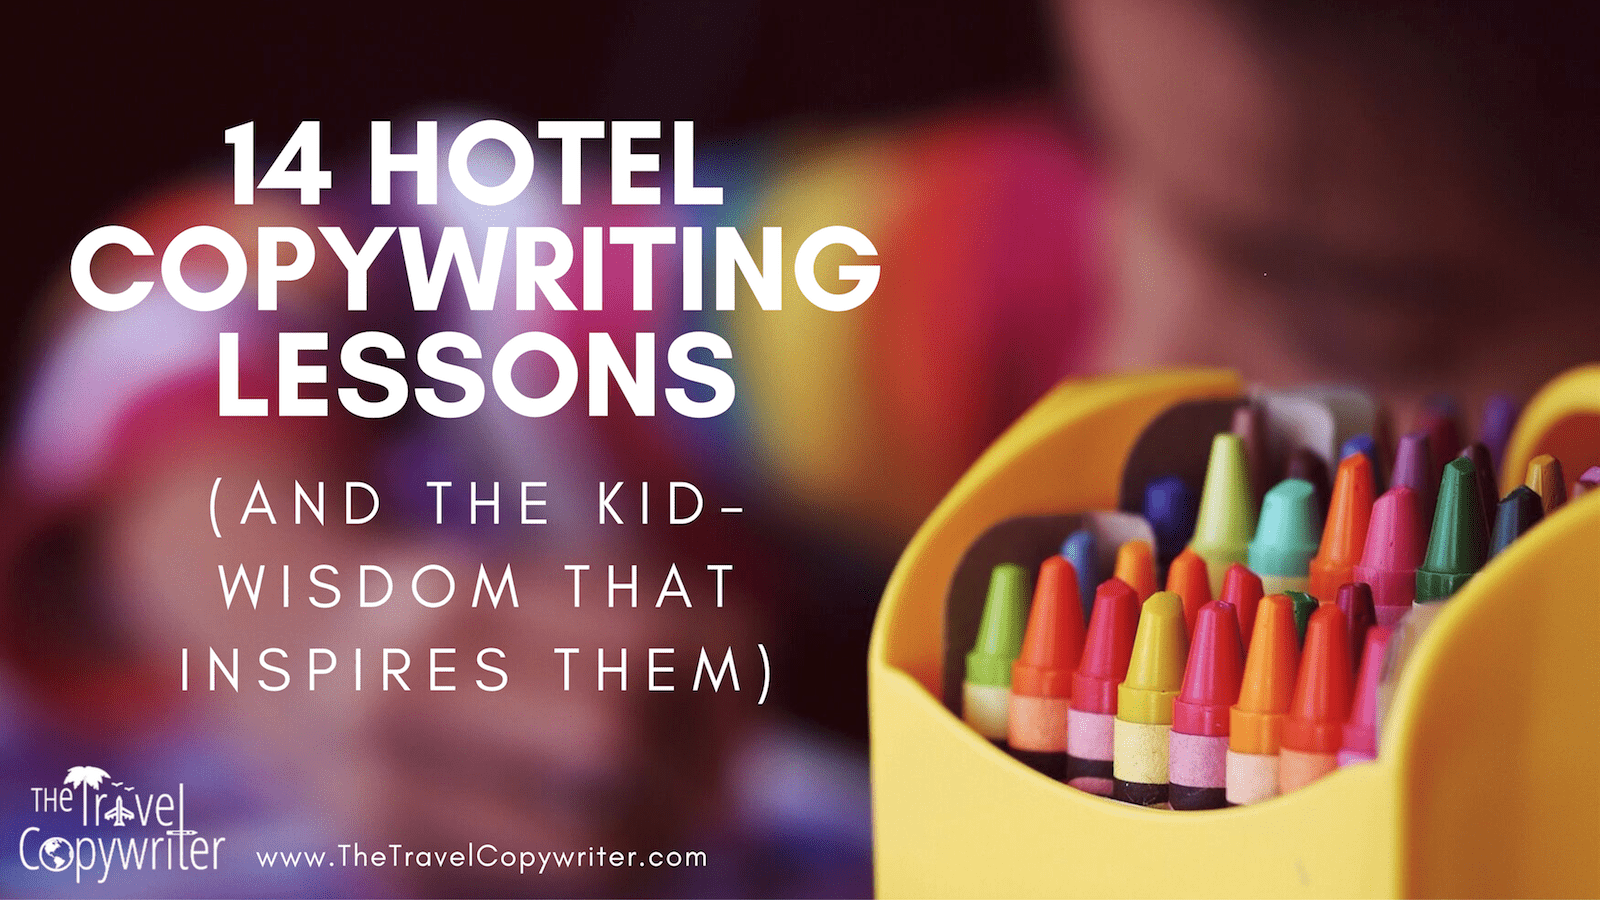 14 Hotel Copywriting Lessons from Kids